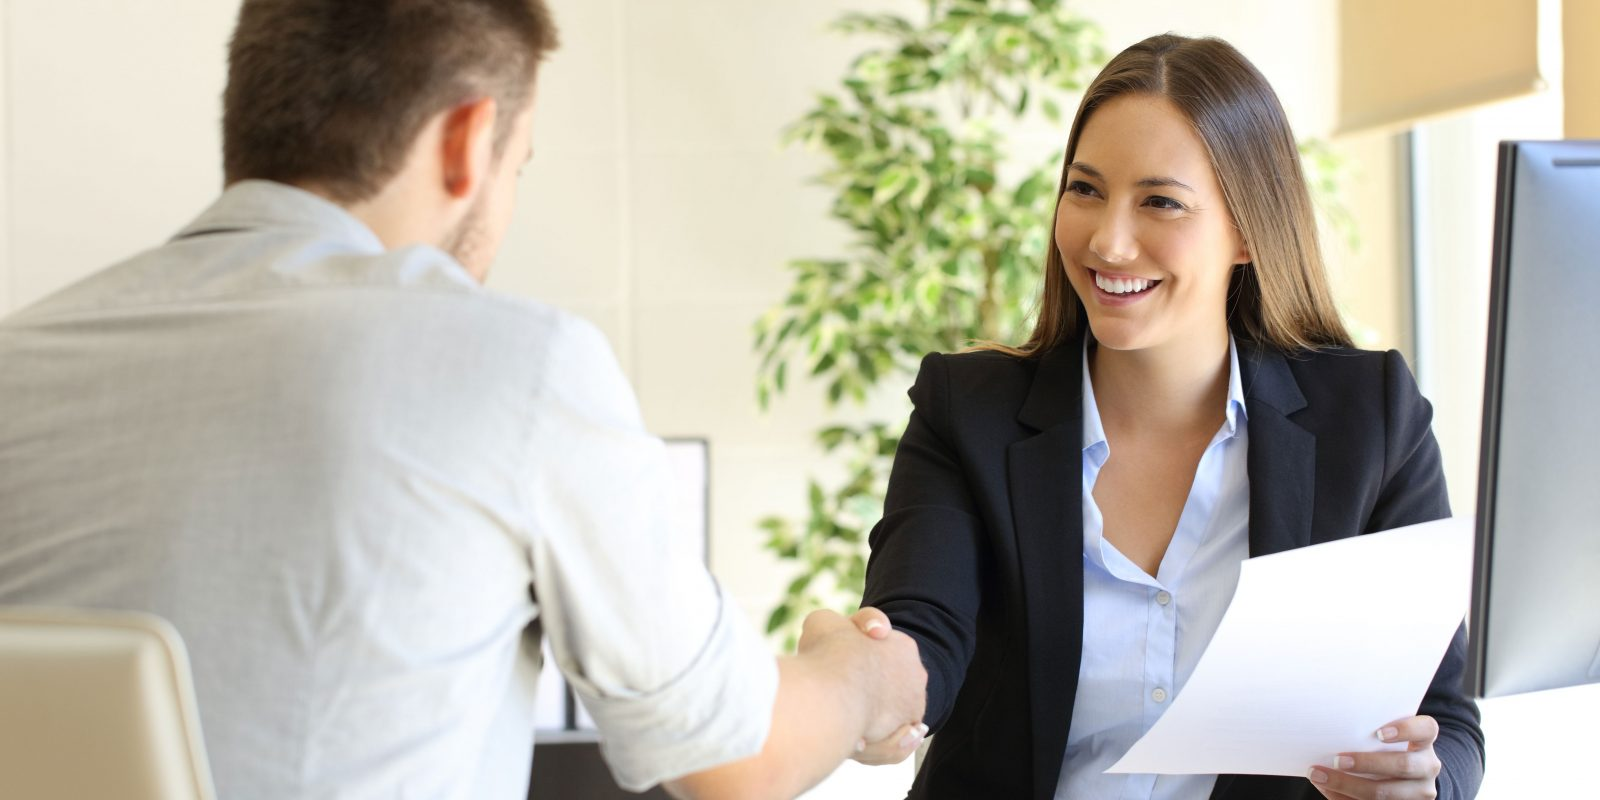 The Dos and Don'ts of Presenting Yourself During Your Job Interview